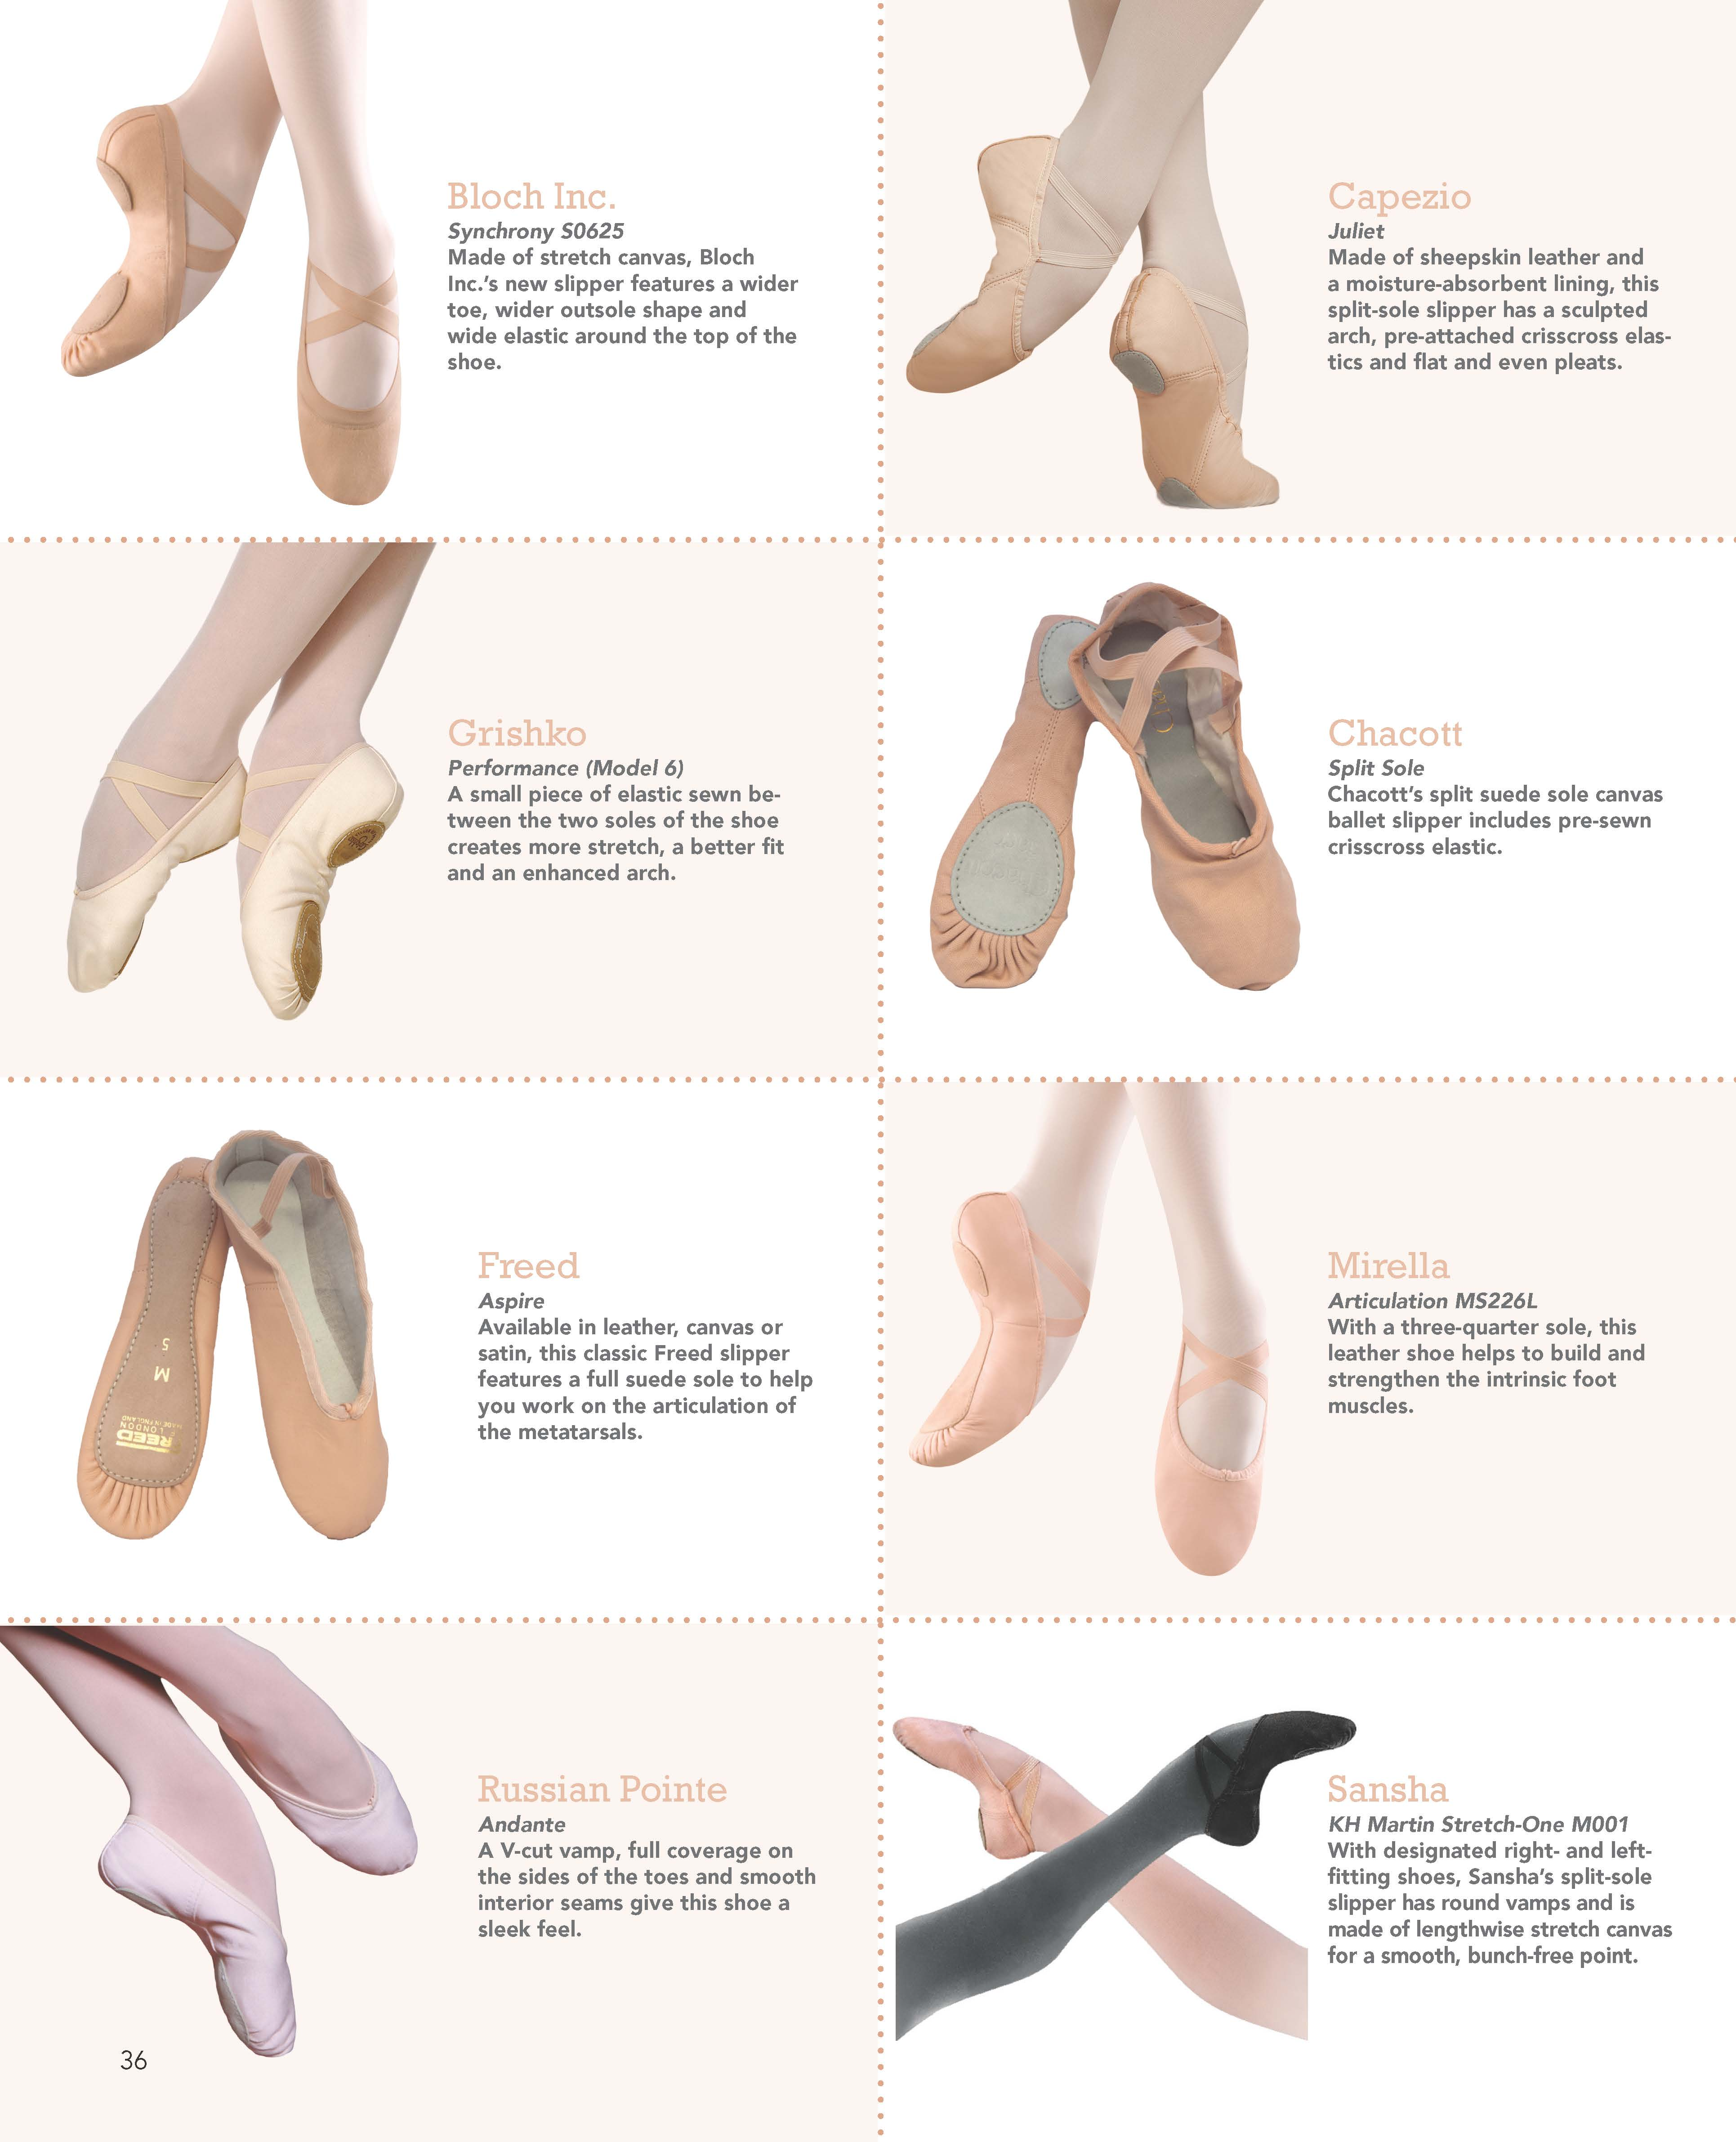 We Ve Picked Some Of The Best Pairs Ballet Slippers To Make Your Decision Easier